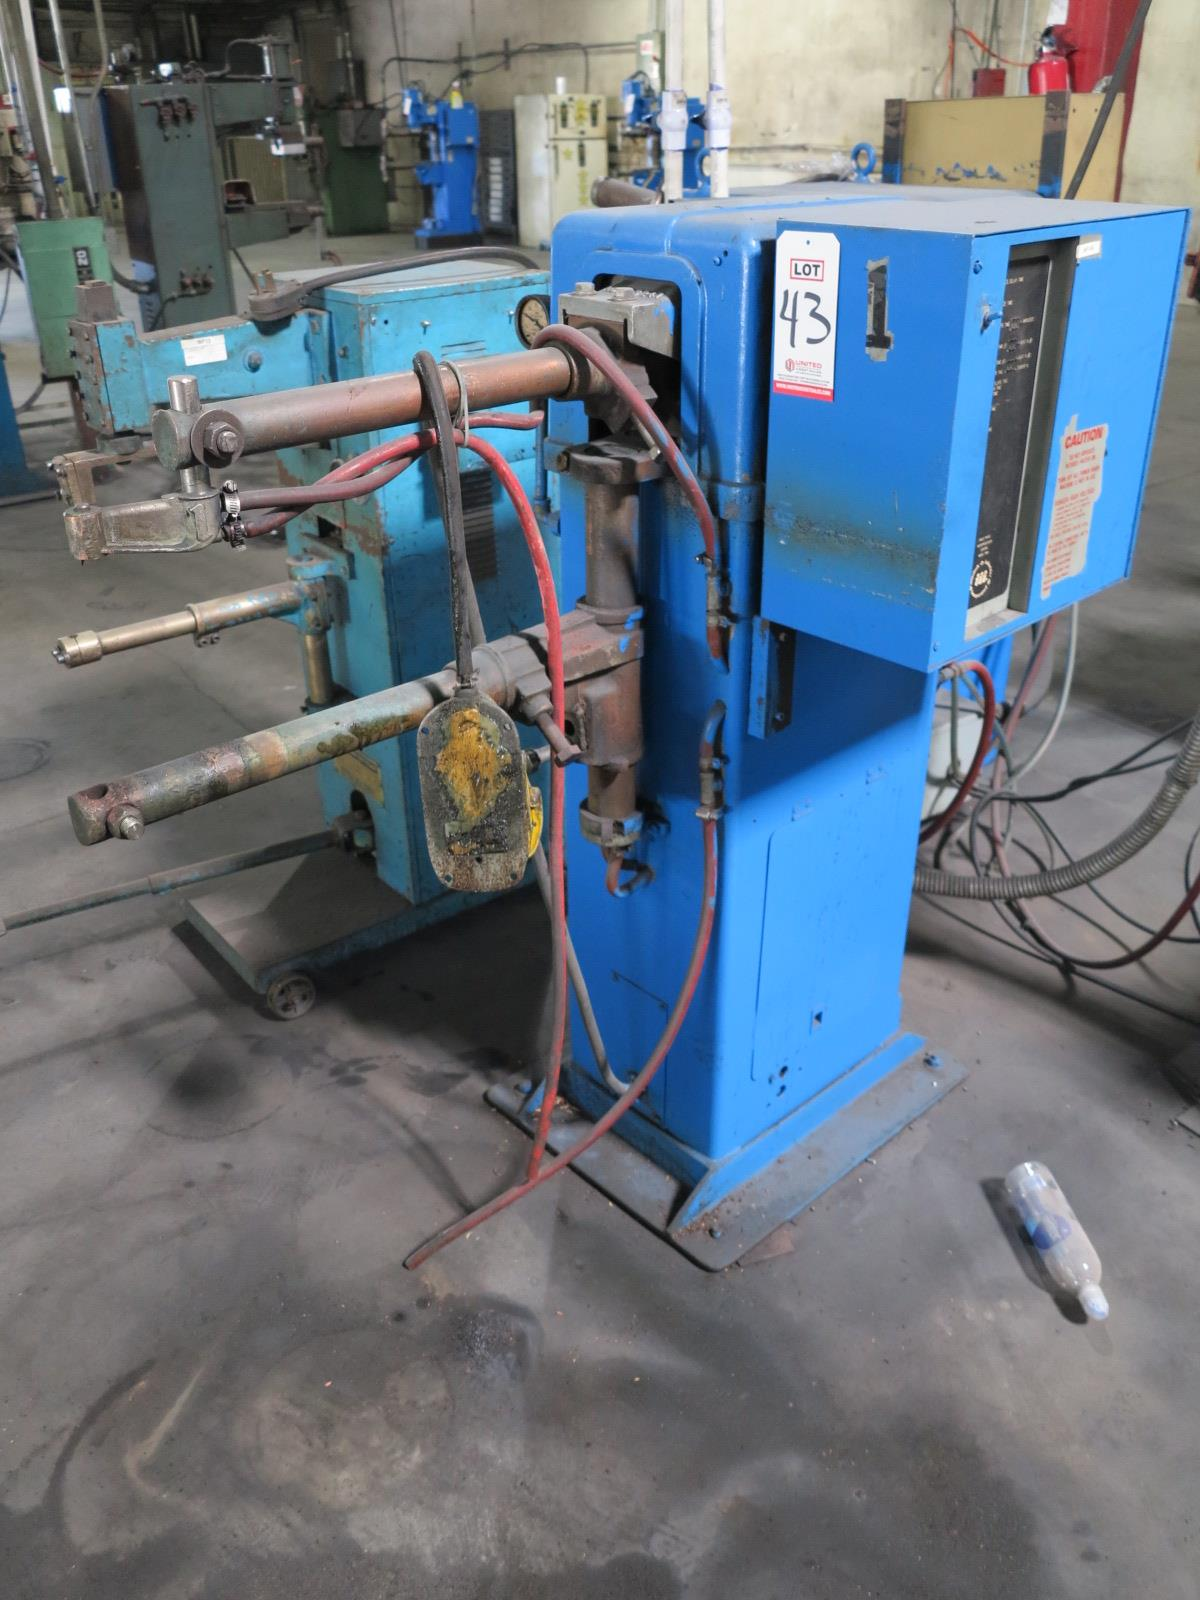 "ACME SPOT WELDER, MODEL 2-18-30, 30 KVA, INTELOCK CONTROL, 24"" ARMS, S/N 12613, FOOT PEDAL - Image 2 of 2"